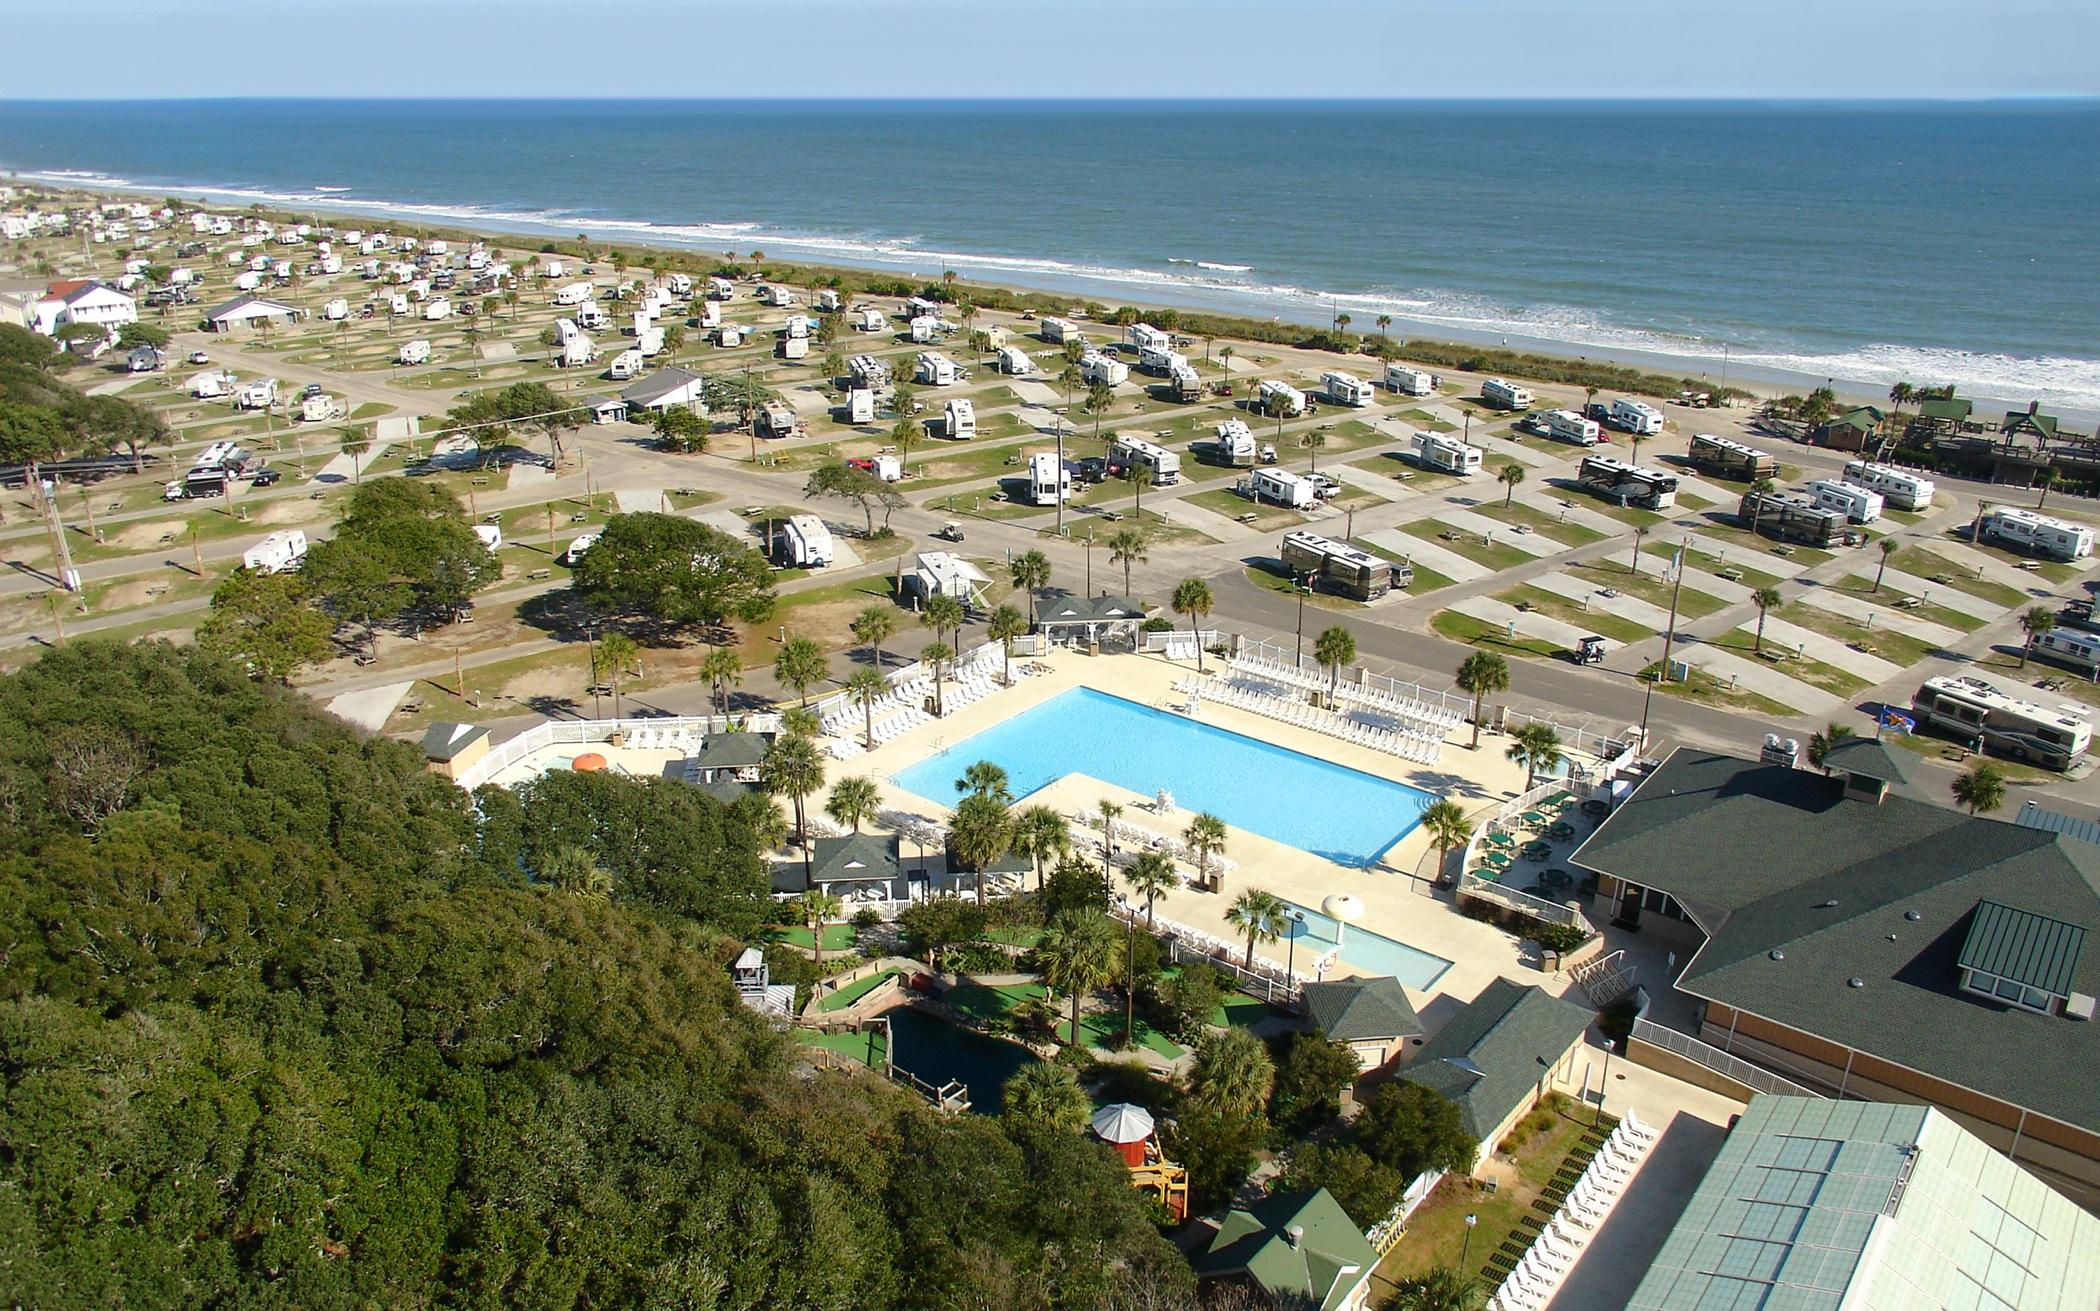 Myrtle Beach S Ocean Lakes Family Campground To Build Two Acre Water Park Construction To Begin